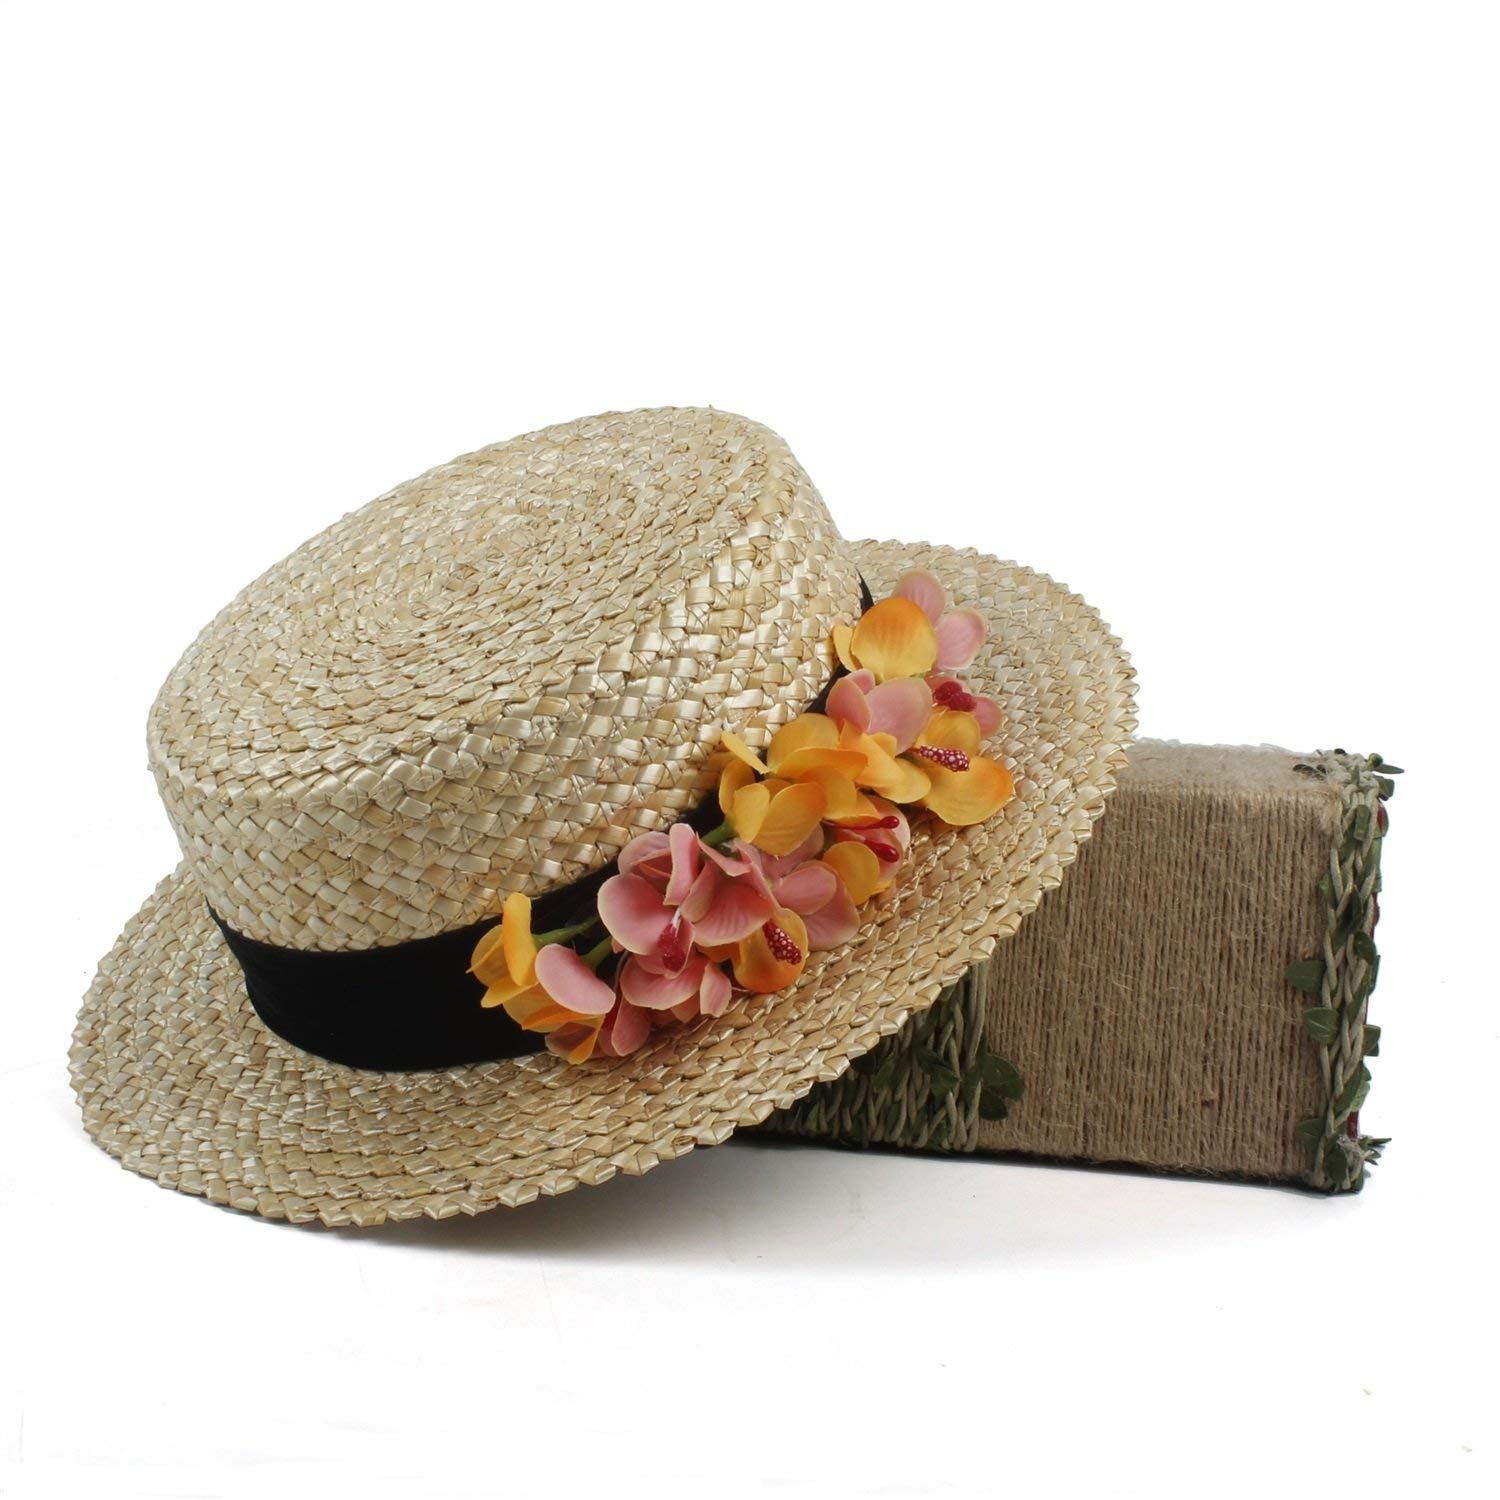 5721f9d0285f9 Straw hat. Flower boater hat.